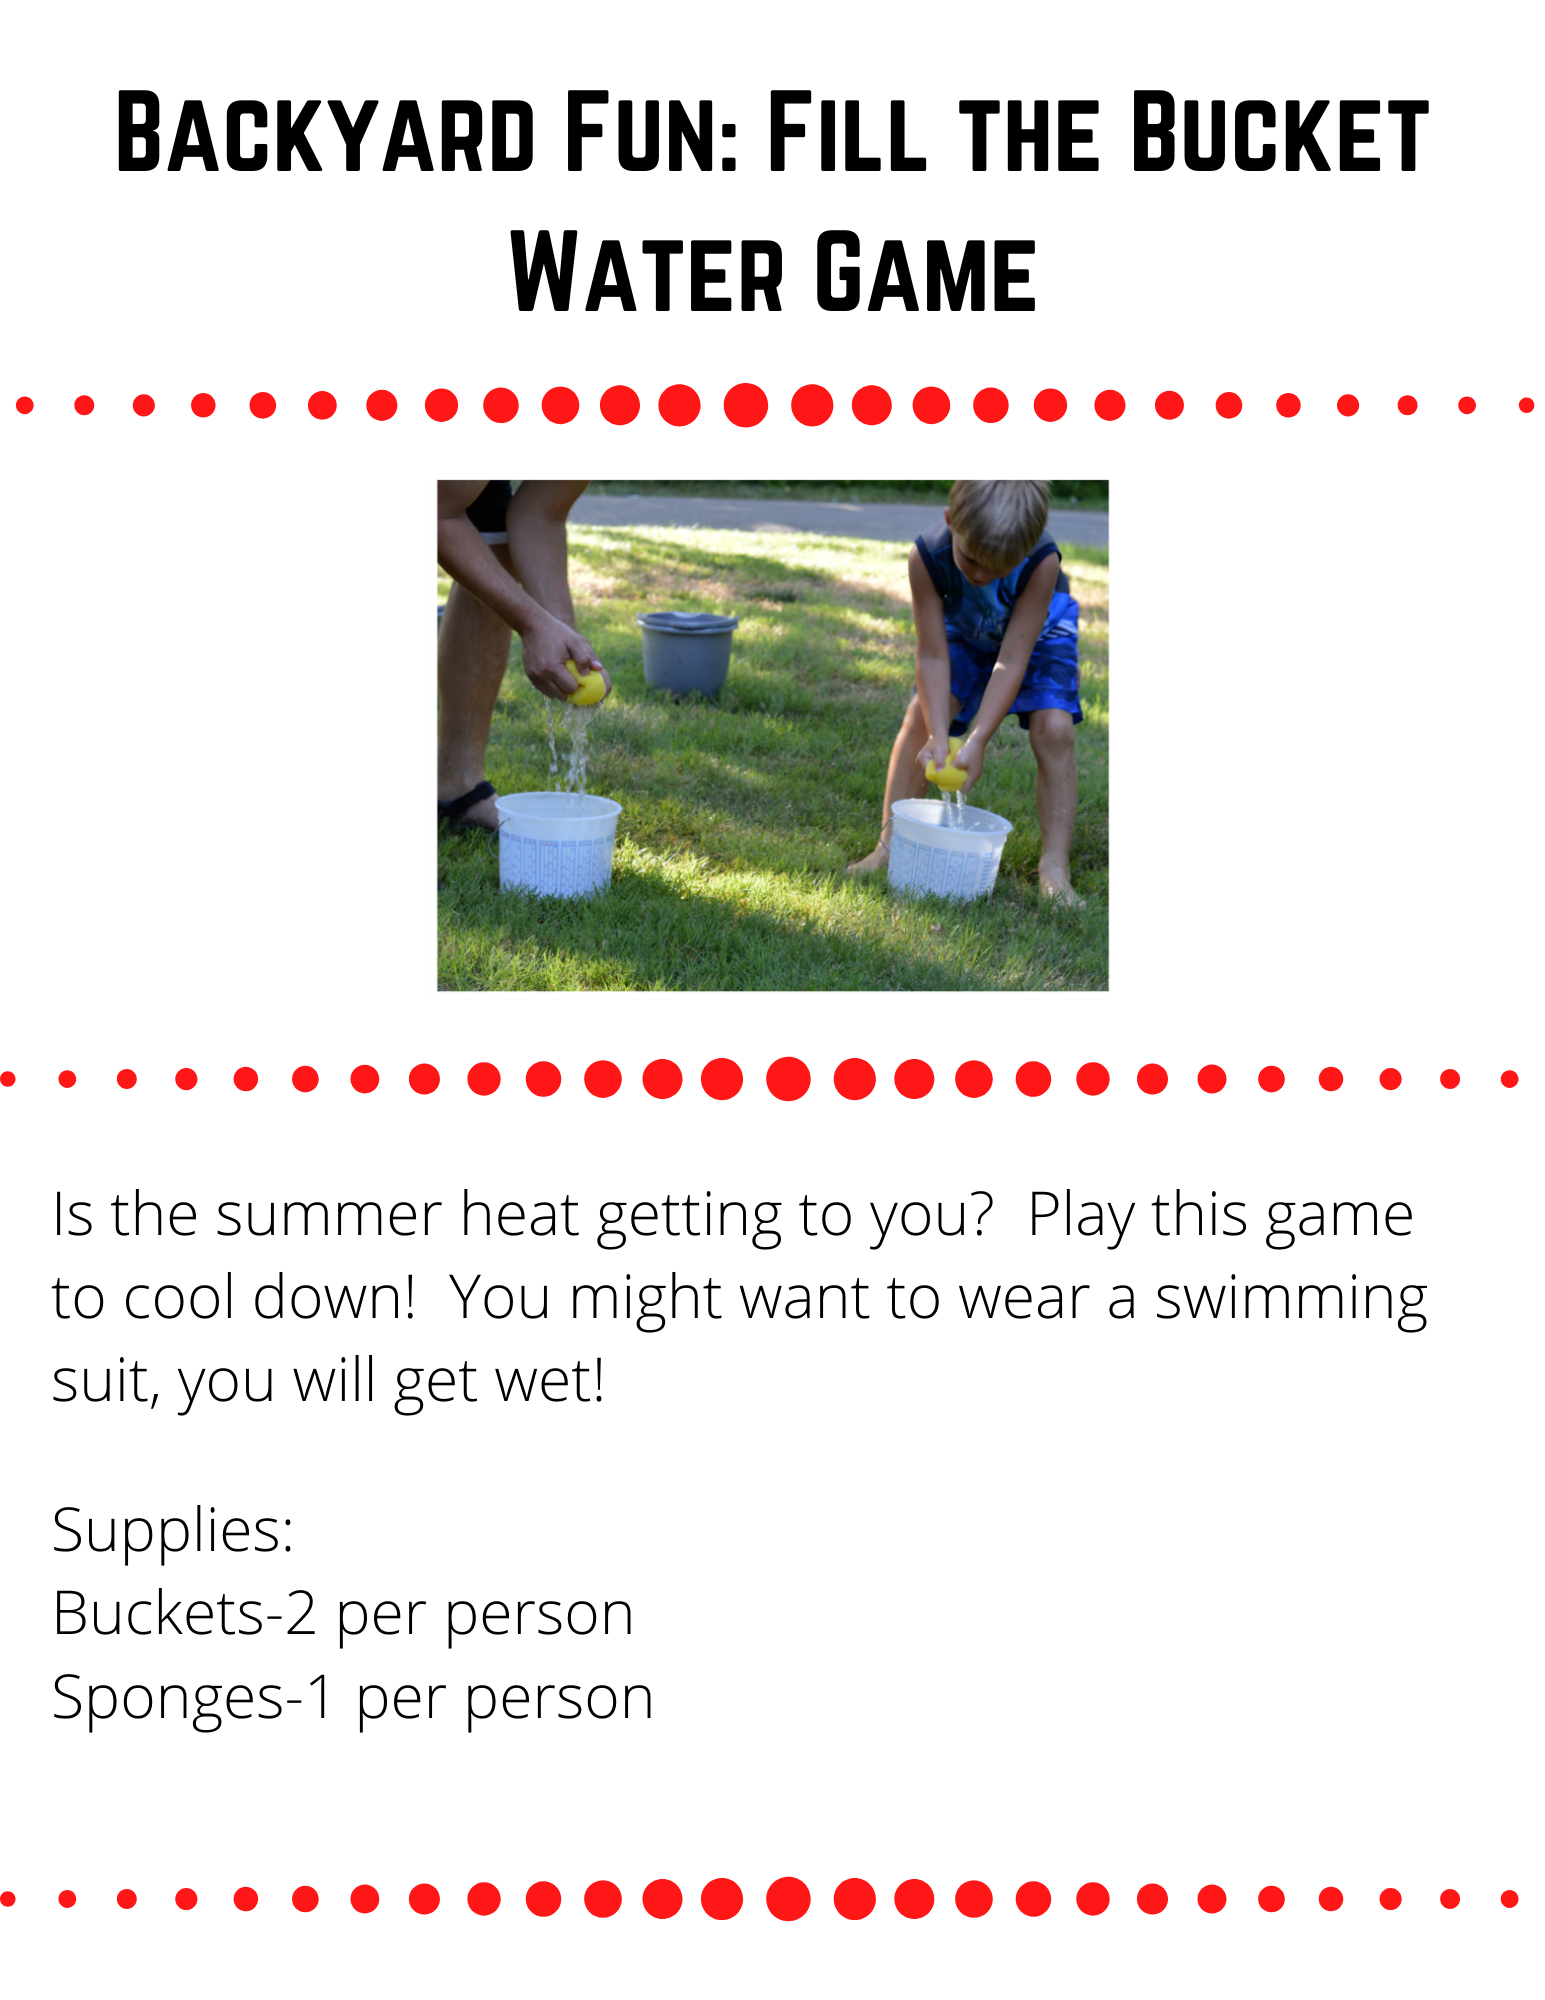 Backyard Fun: Fill the Bucket Water Game  Is the summer heat getting to you?  Play this game to cool down!  You might want to wear a swimming suit, you will get wet!    Supplies: Buckets-2 per person Sponges-1 per person  To Play:  Place the two buckets across the yard from each other. Each player gets their sponge wet and then runs to the the other side and squeezes their sponge into the container. This continues until one person fills their container or you run out of water. The winning team is the team who has the most water in their container.